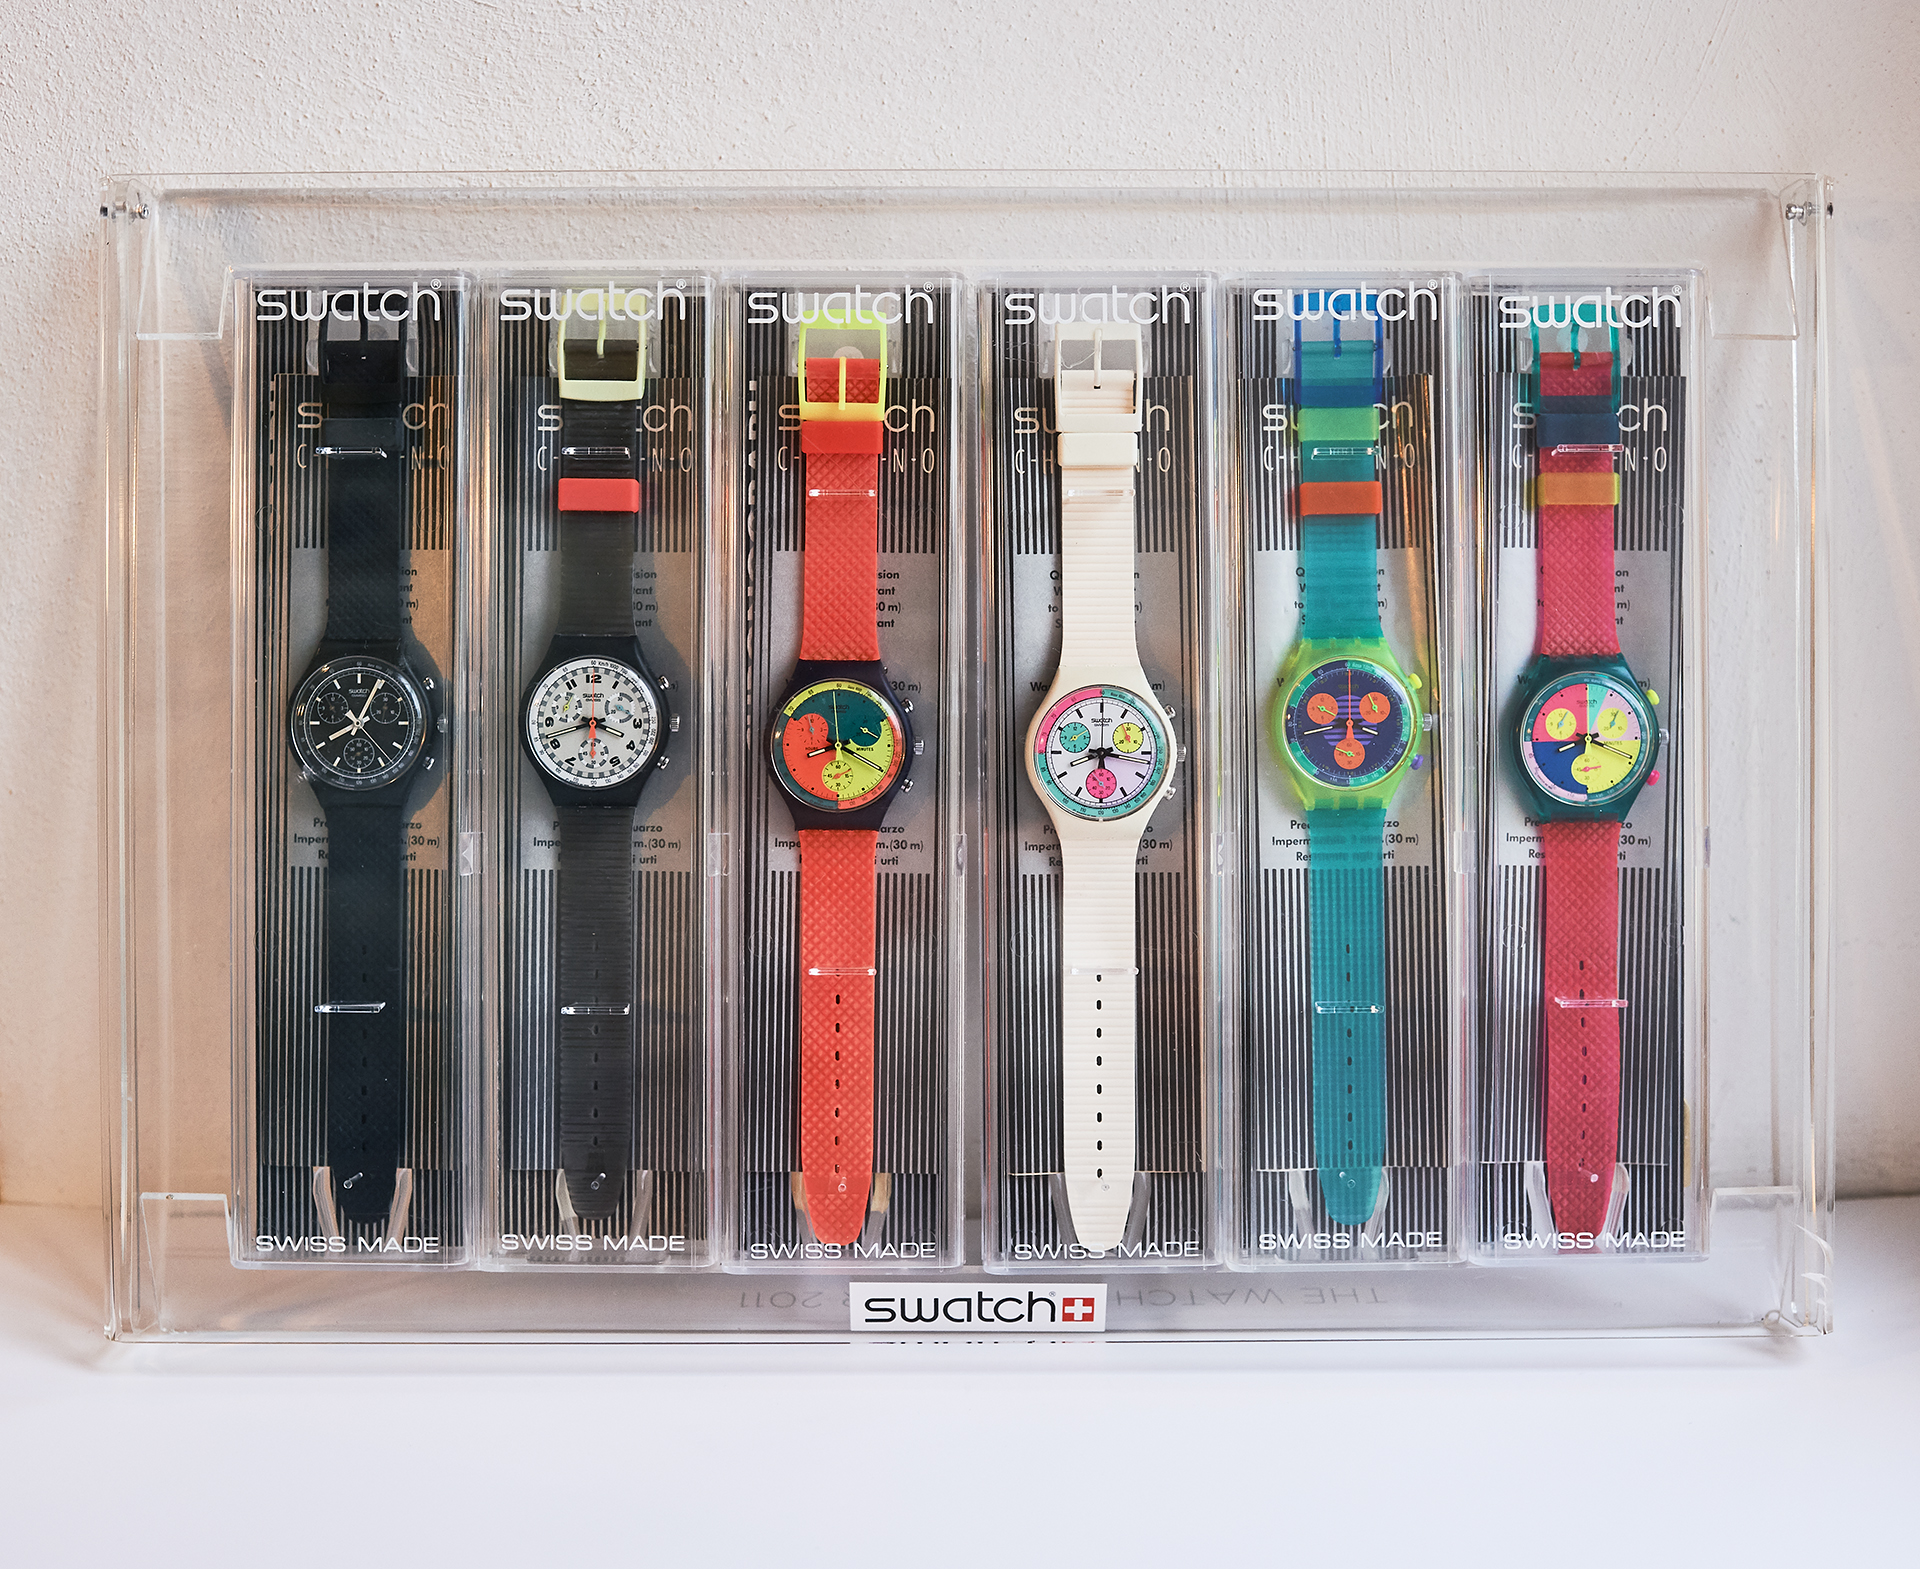 The first Swatch Chronocollection from 1990